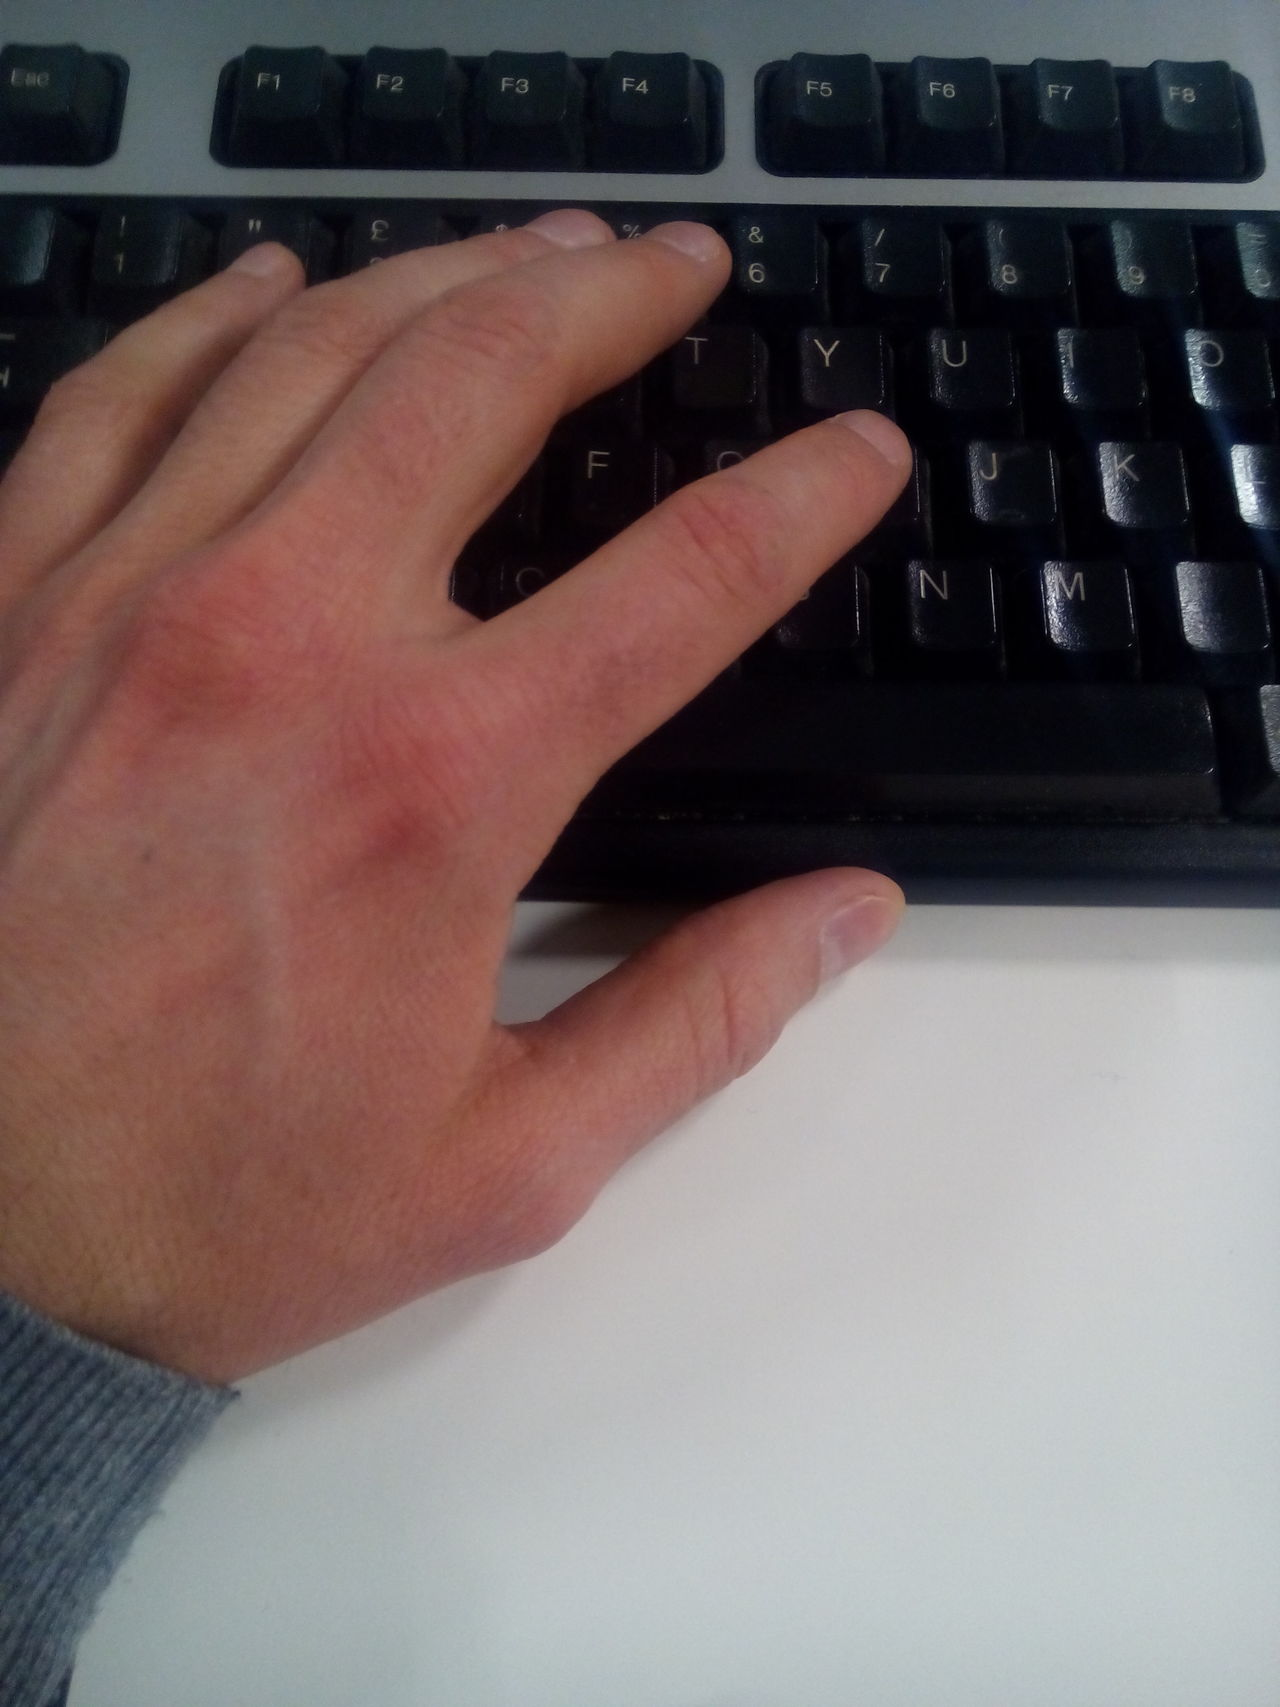 Human Body Part Human Hand People One Person Table Indoors  Day Office Building Office Informática Information Technology USB USB Connection Keyboard Keyboard Whit Hand Usb Keyboard